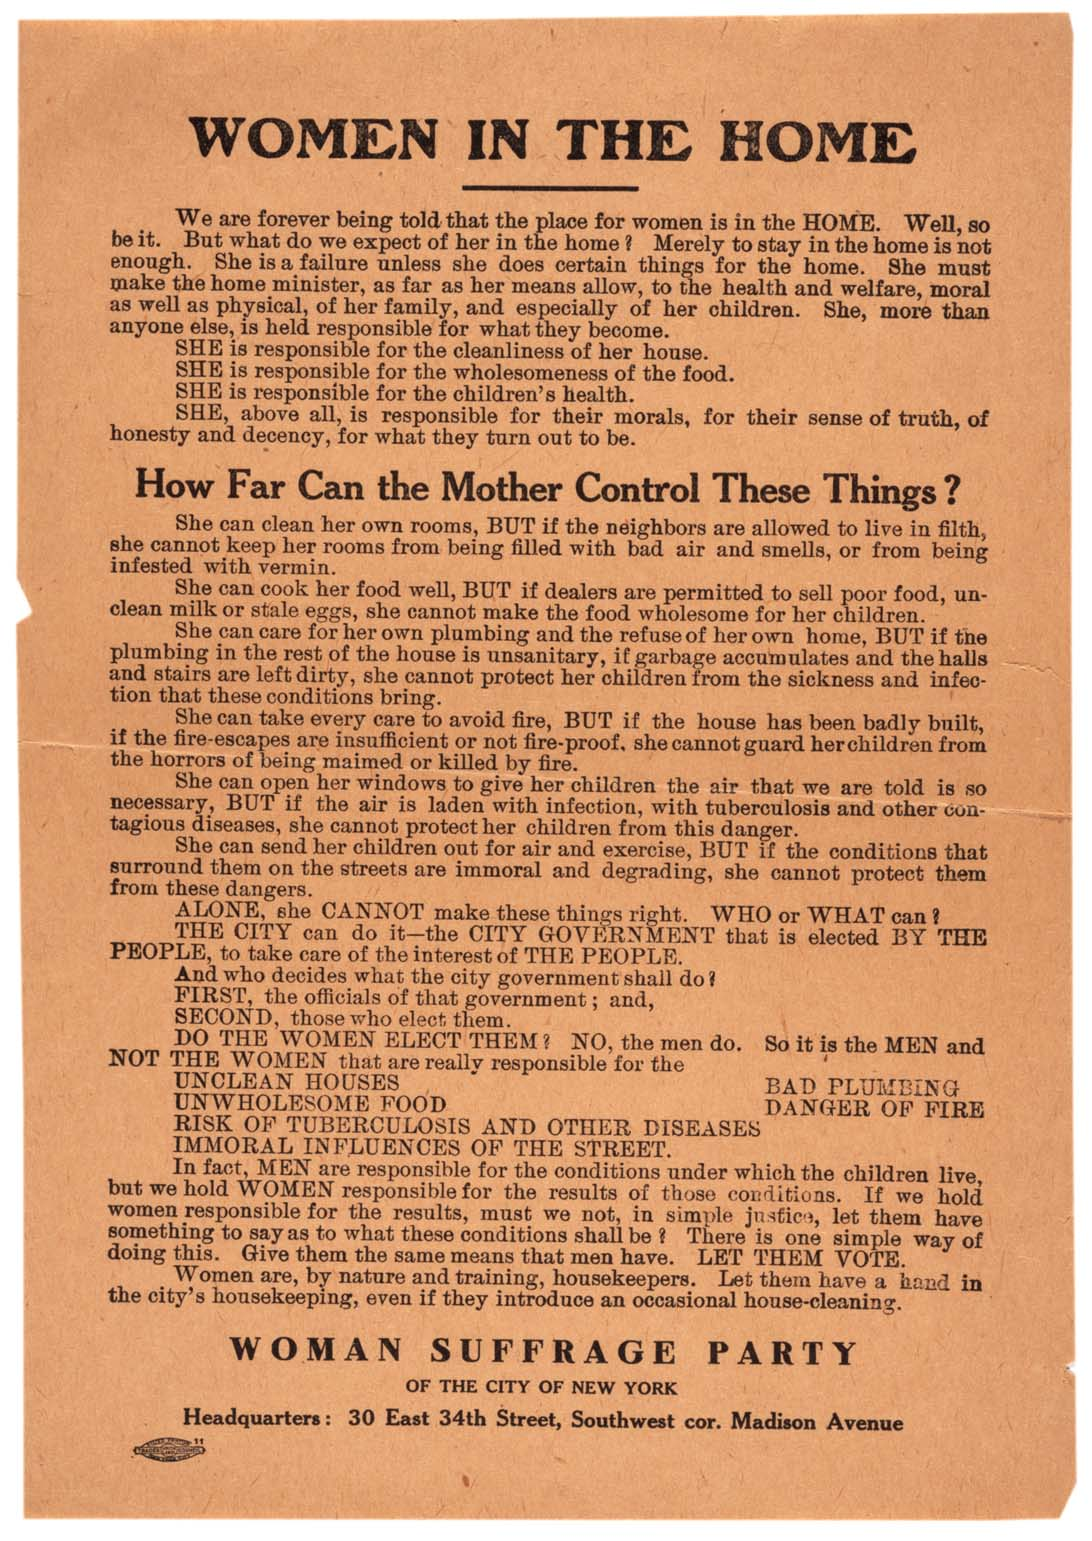 women s suffrage poster 1915 the gilder lehrman institute of w suffrage party of the city of new york women in the home broadside